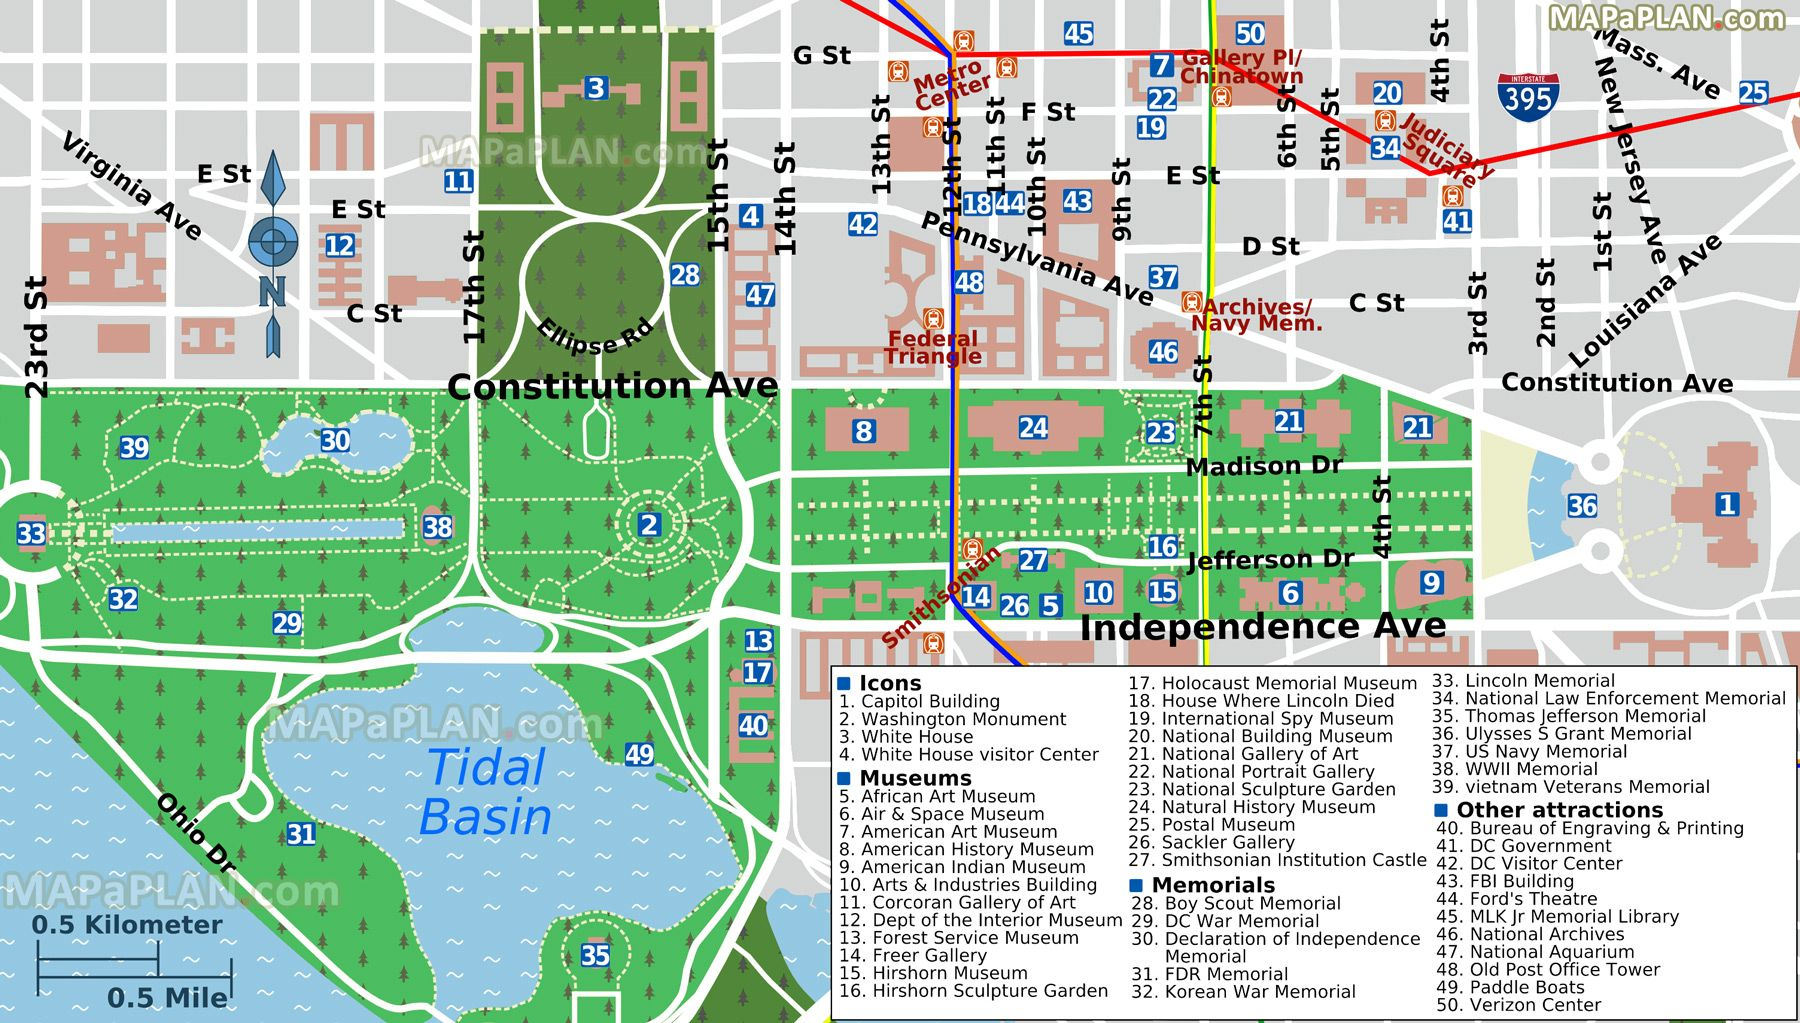 Pin by debi moody on Projects to Try | Washington dc map, Washington ...